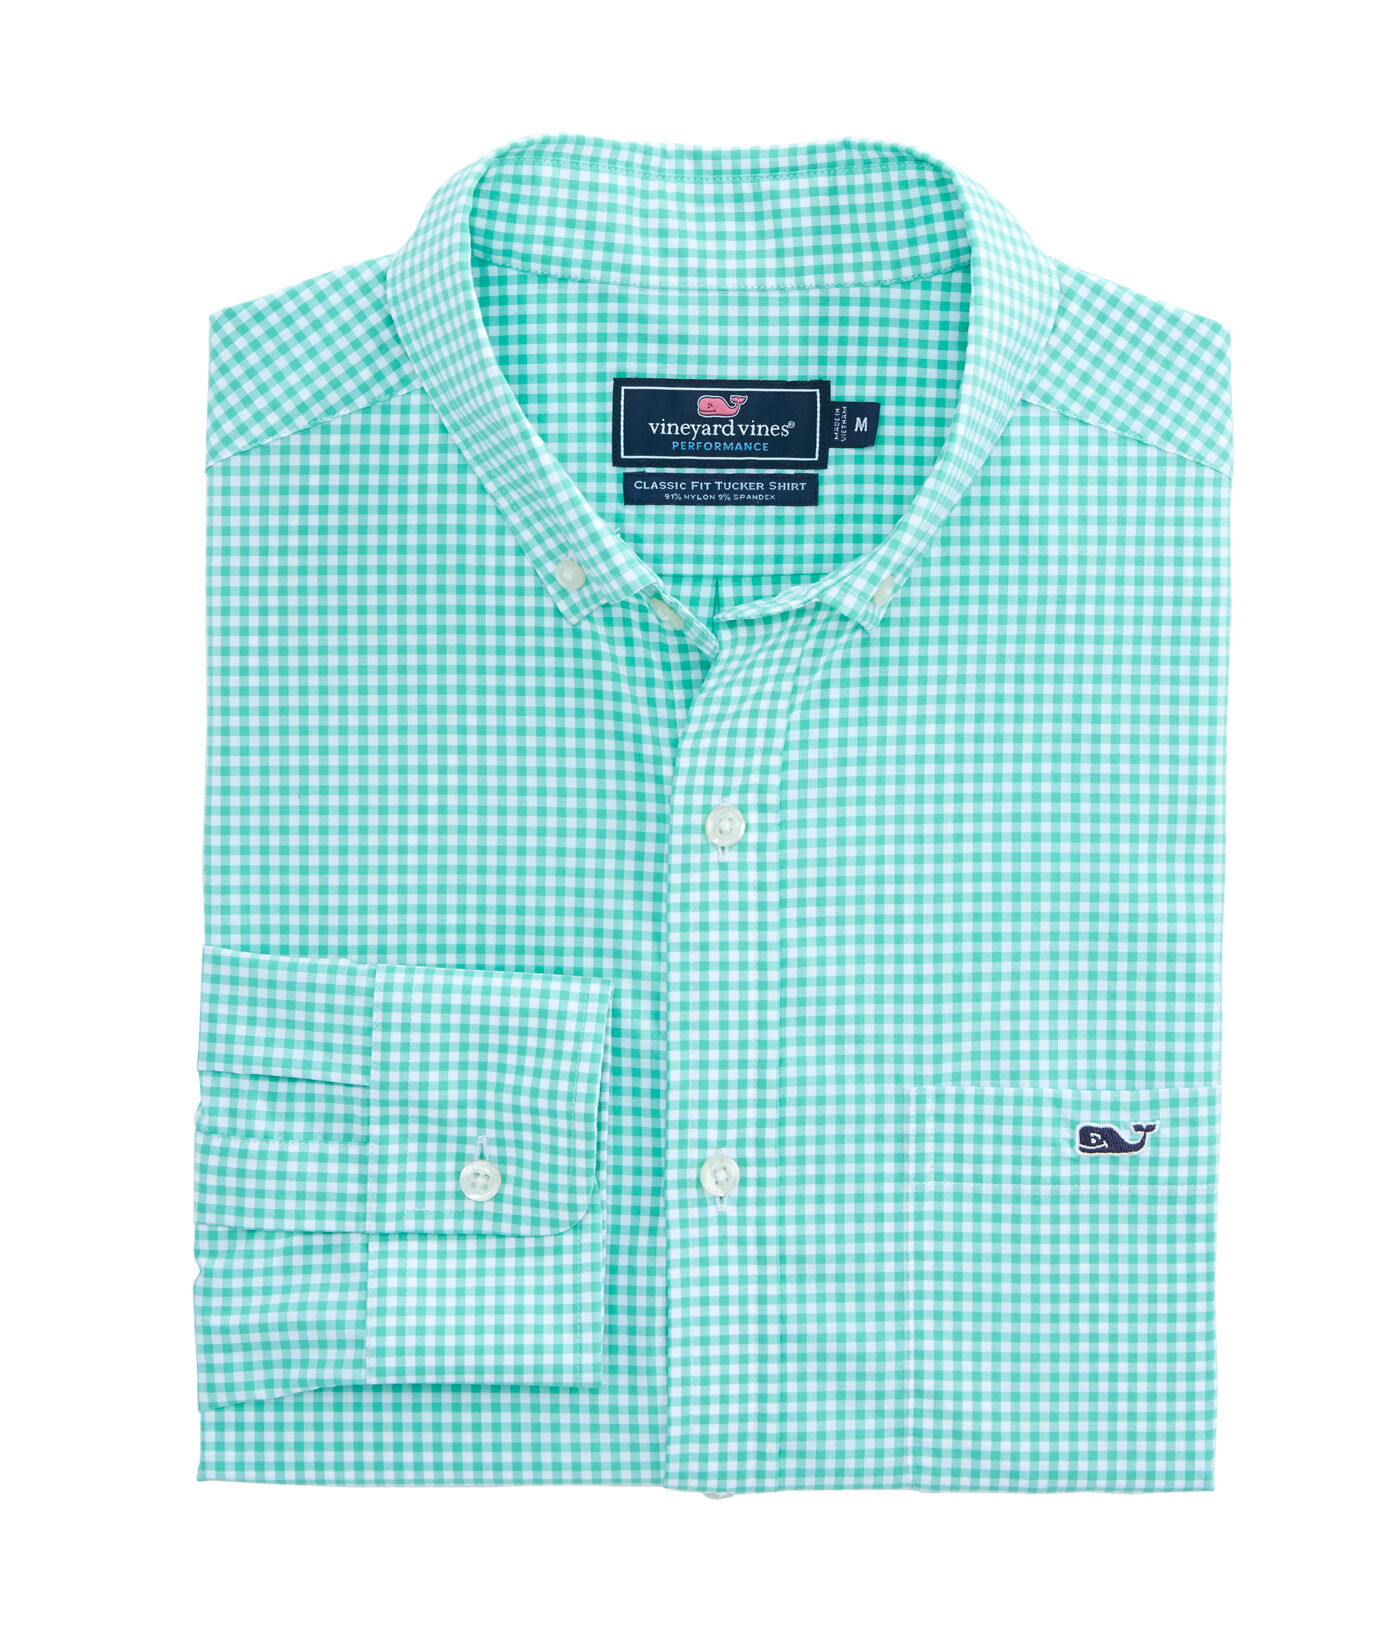 Vineyard Vines Mens Classic Fit Whale Shirt